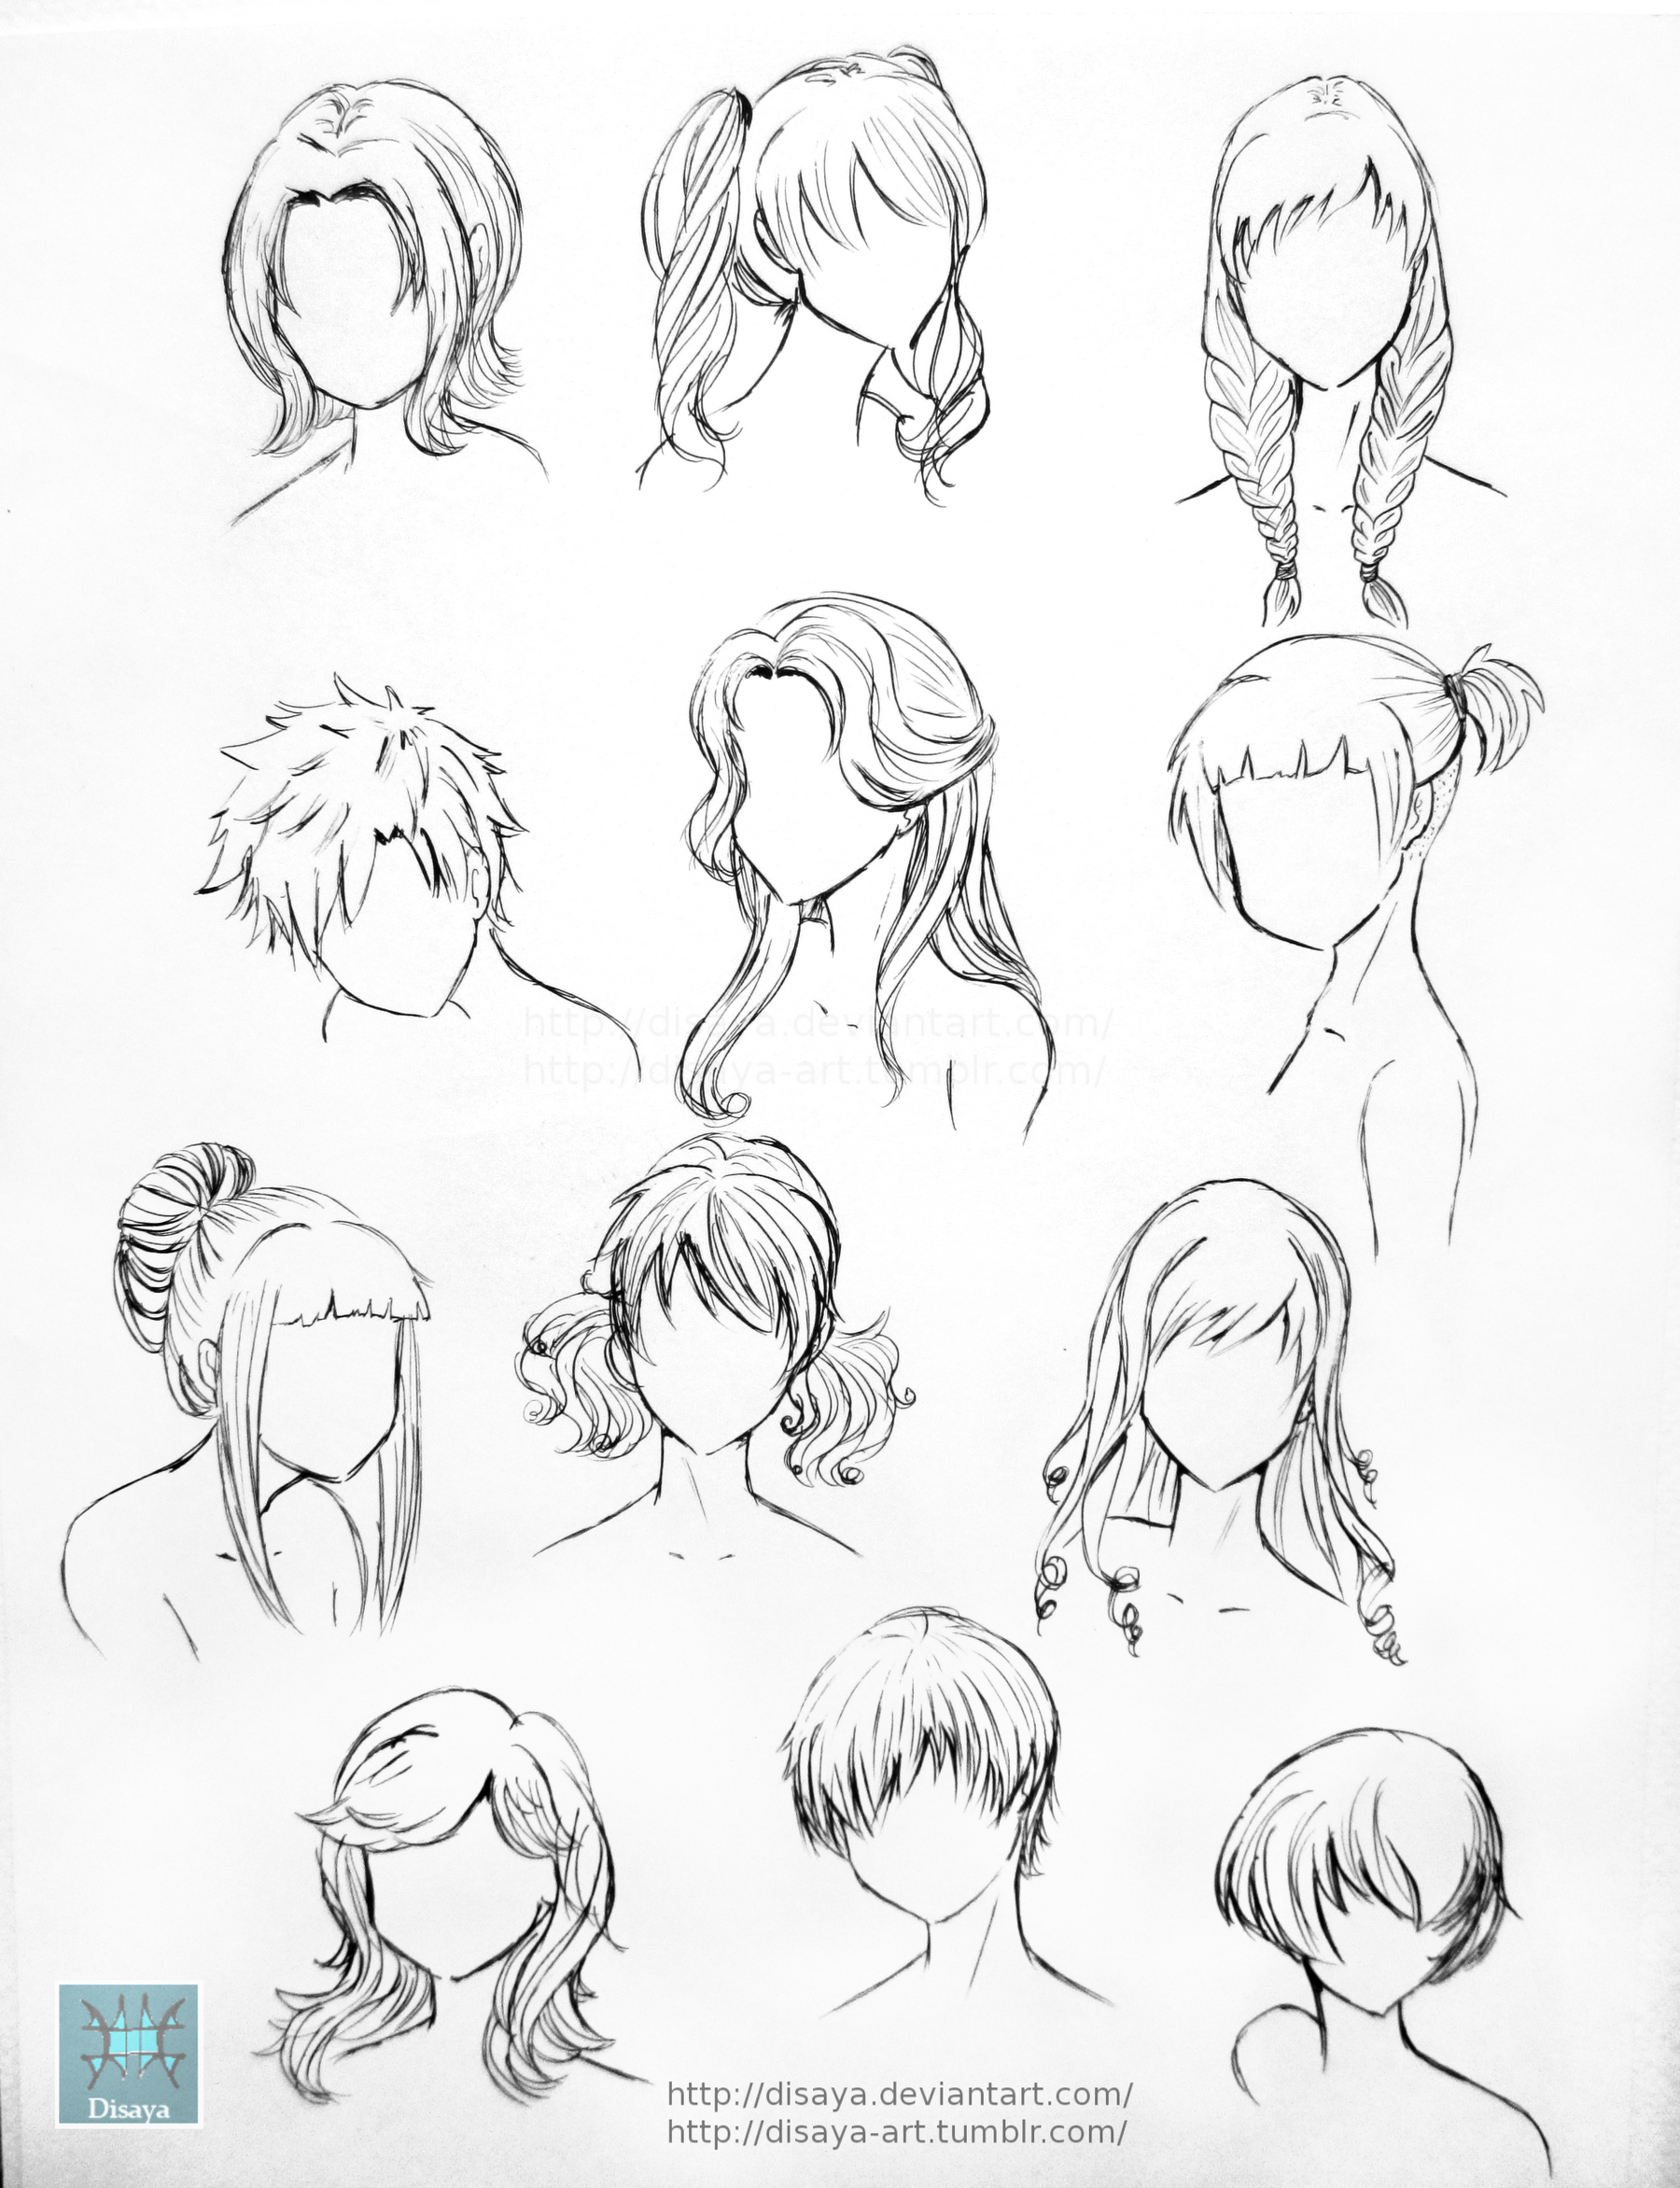 Hair Reference 1 by Disaya on Wysp Drawings, Sketches